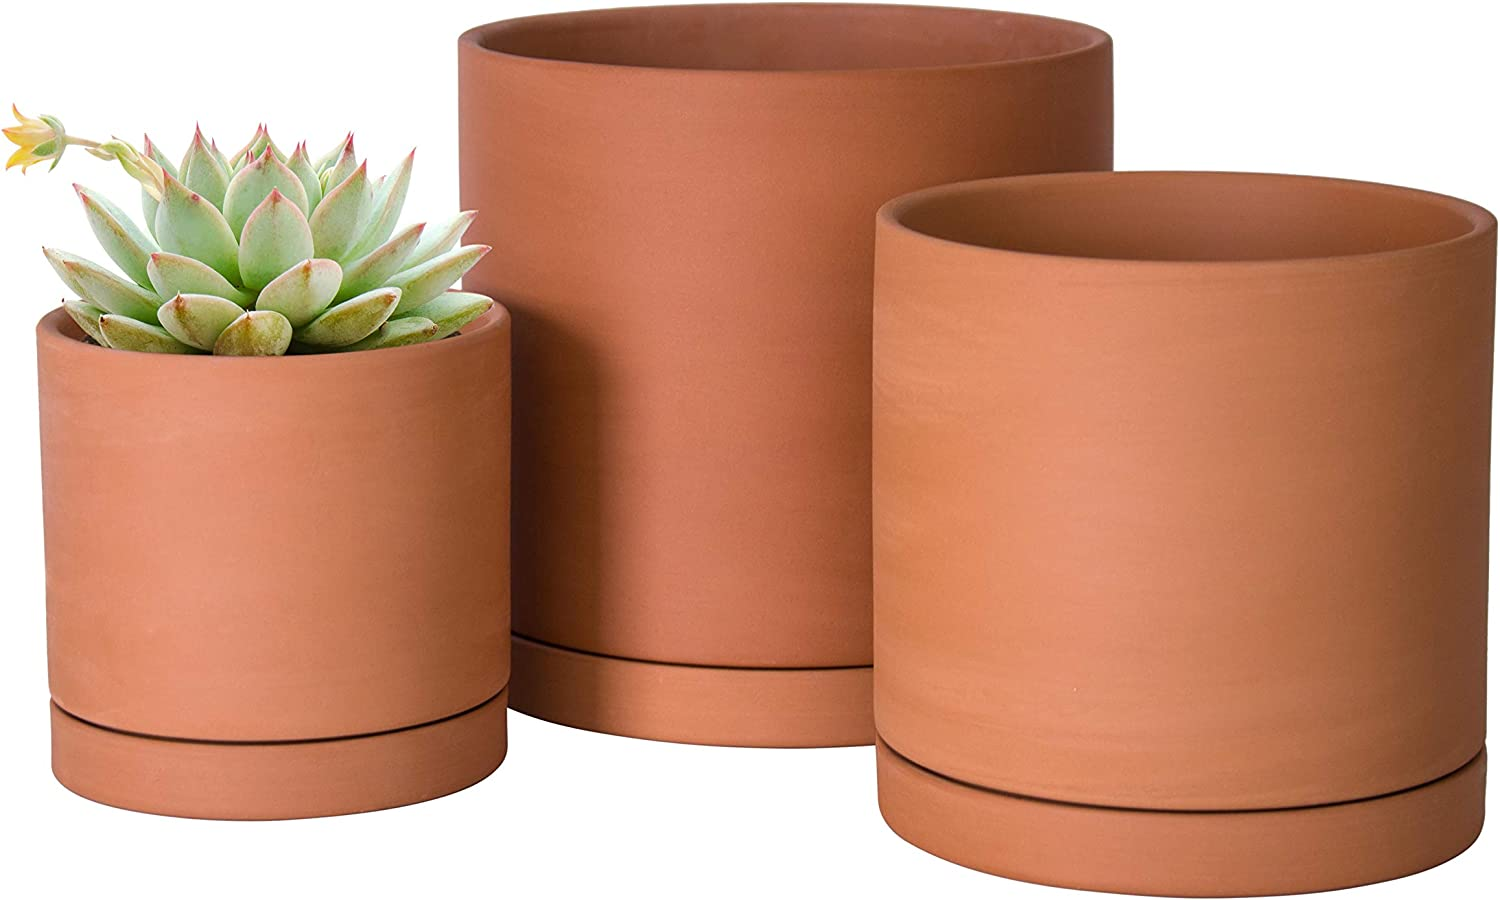 Terracotta Pots with Drainage Hole & Saucers